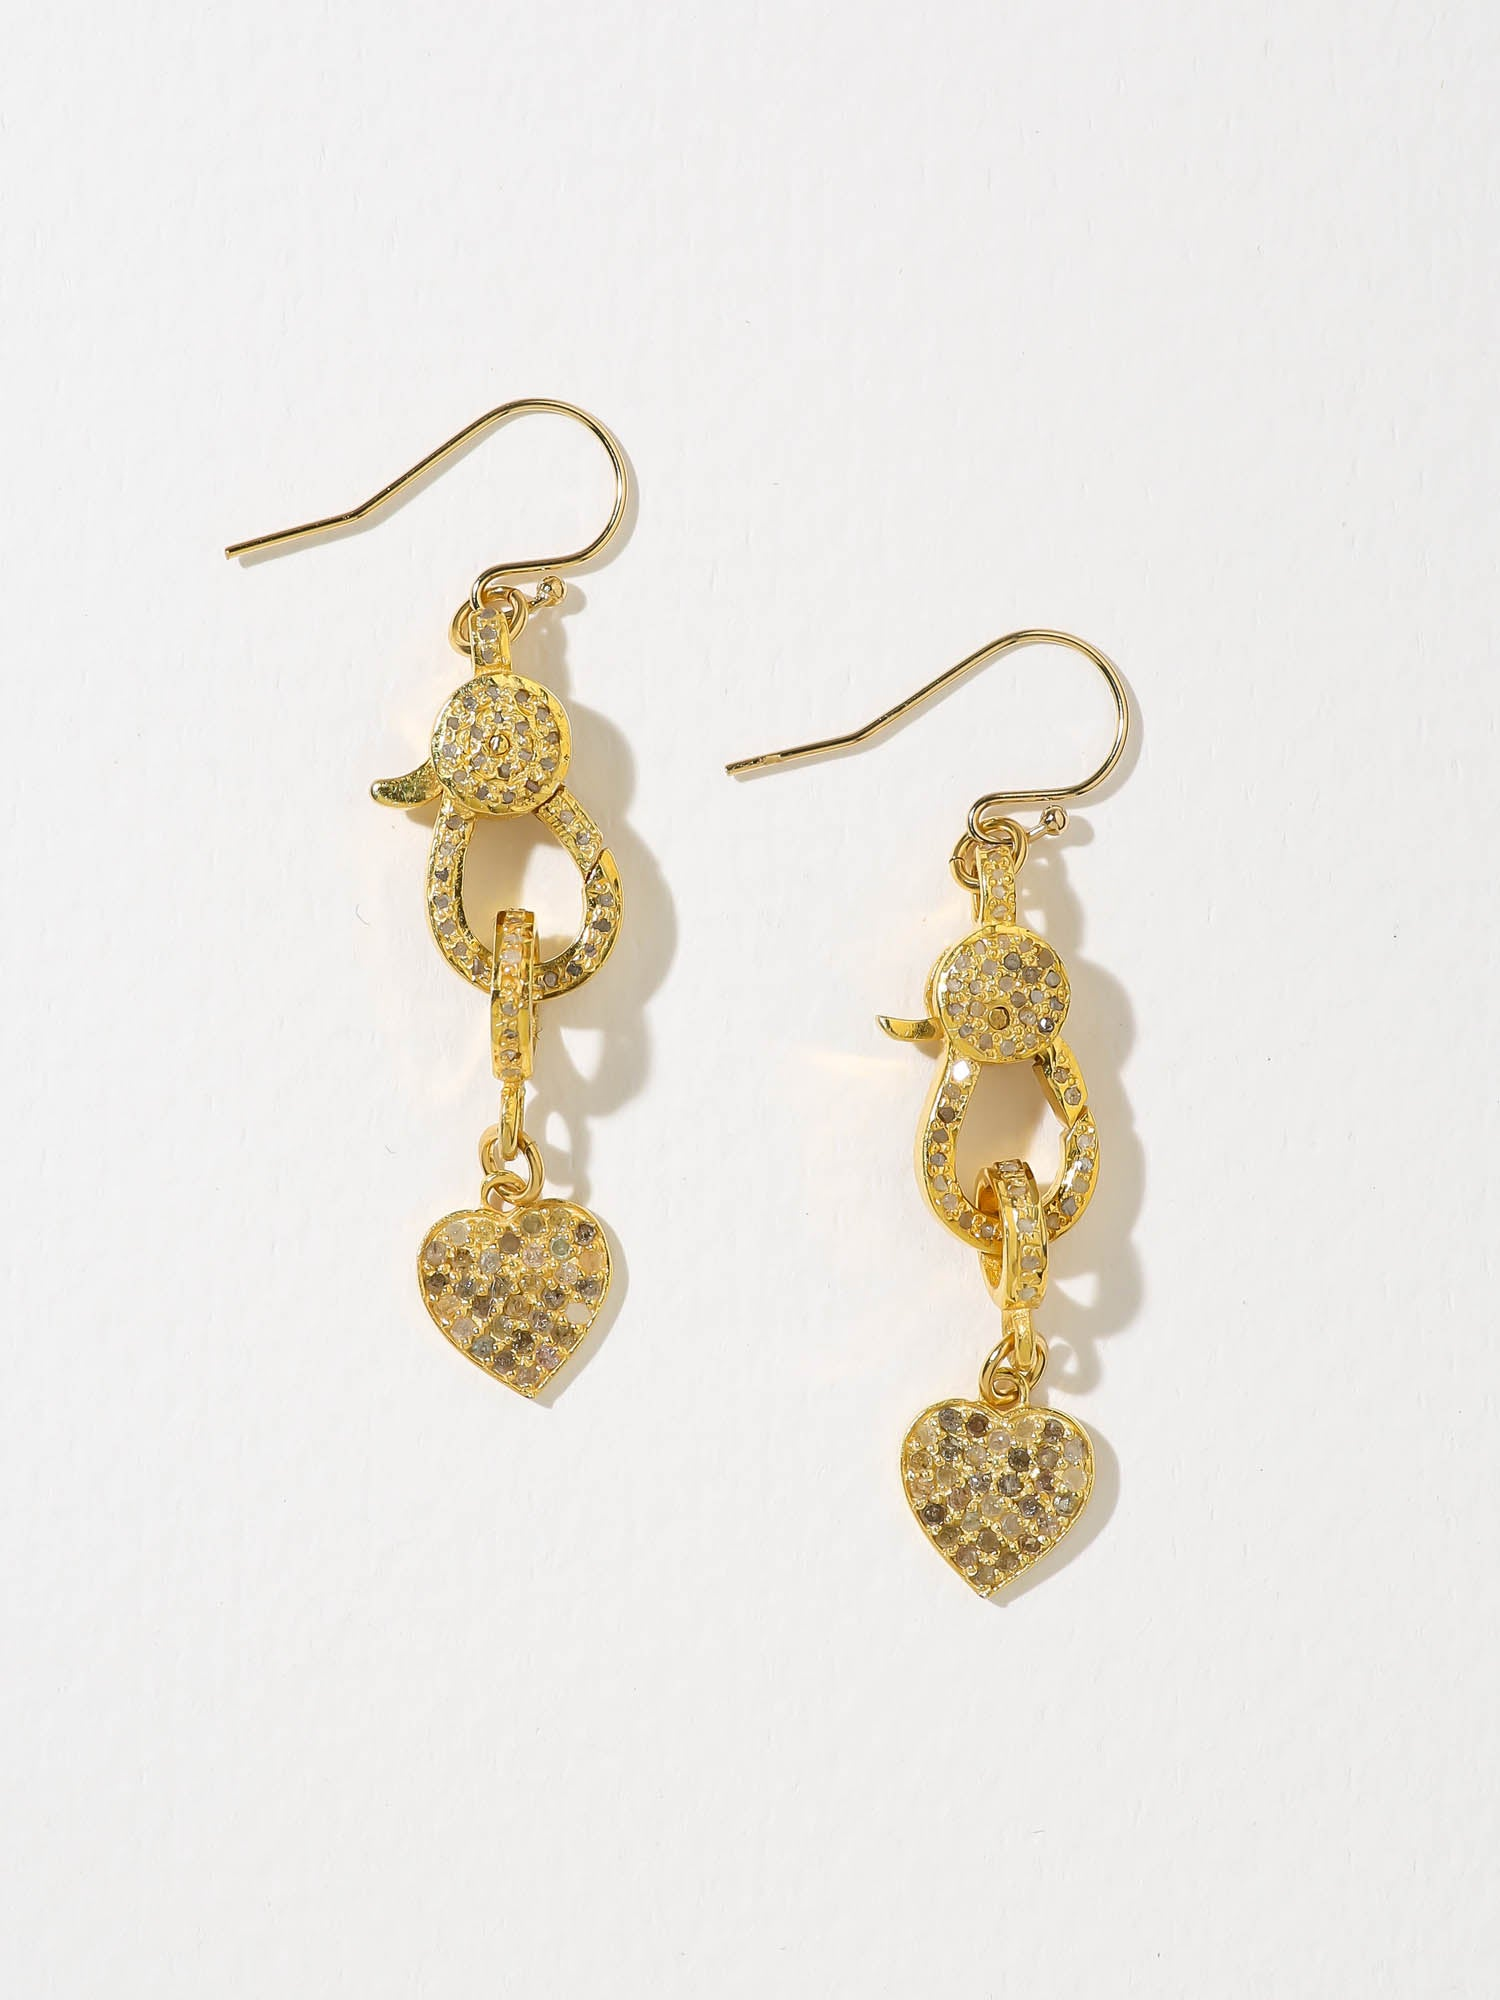 The Faye Diamond Charm Earrings